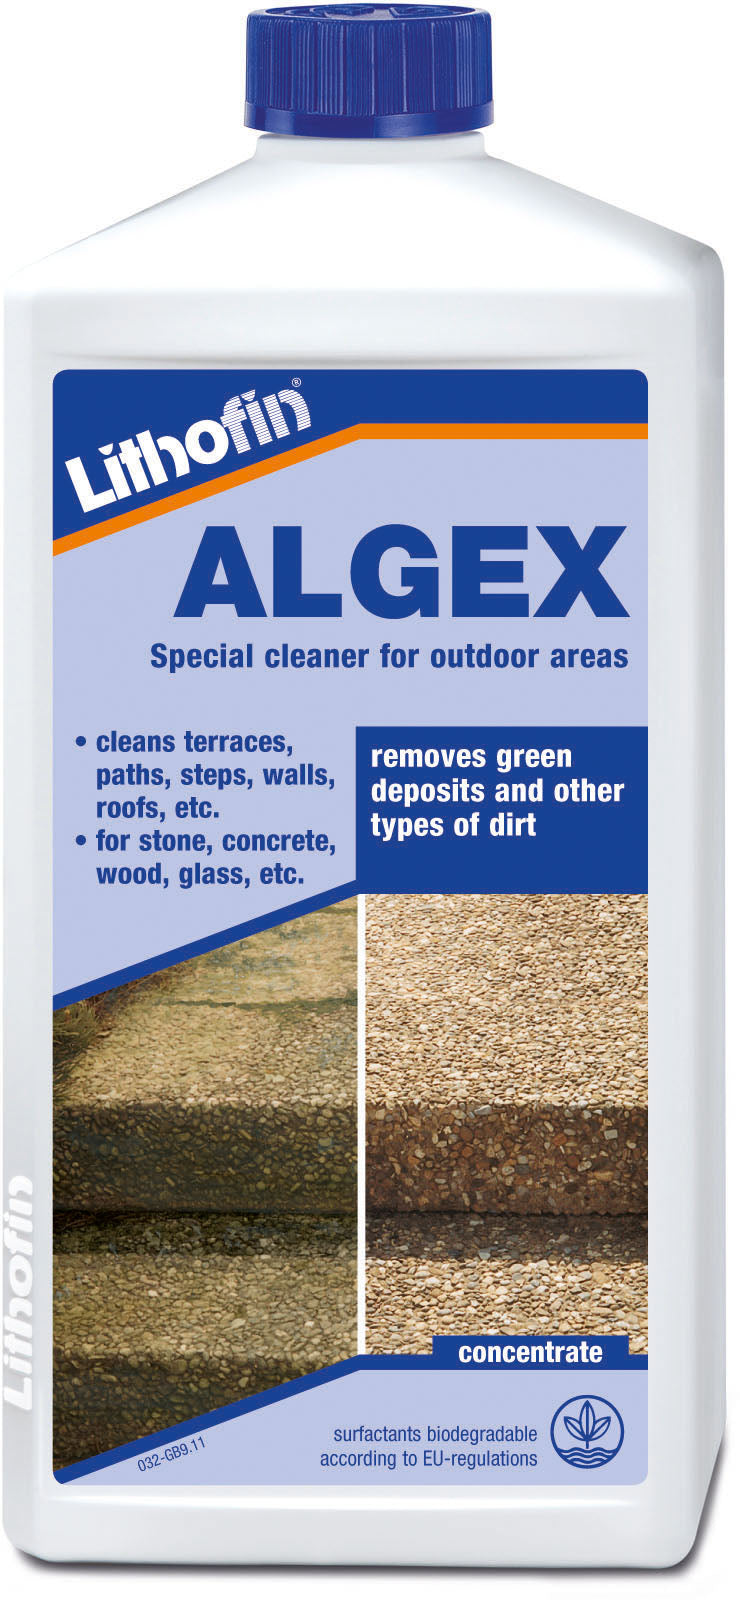 ALGEX special cleaner for outdoor areas